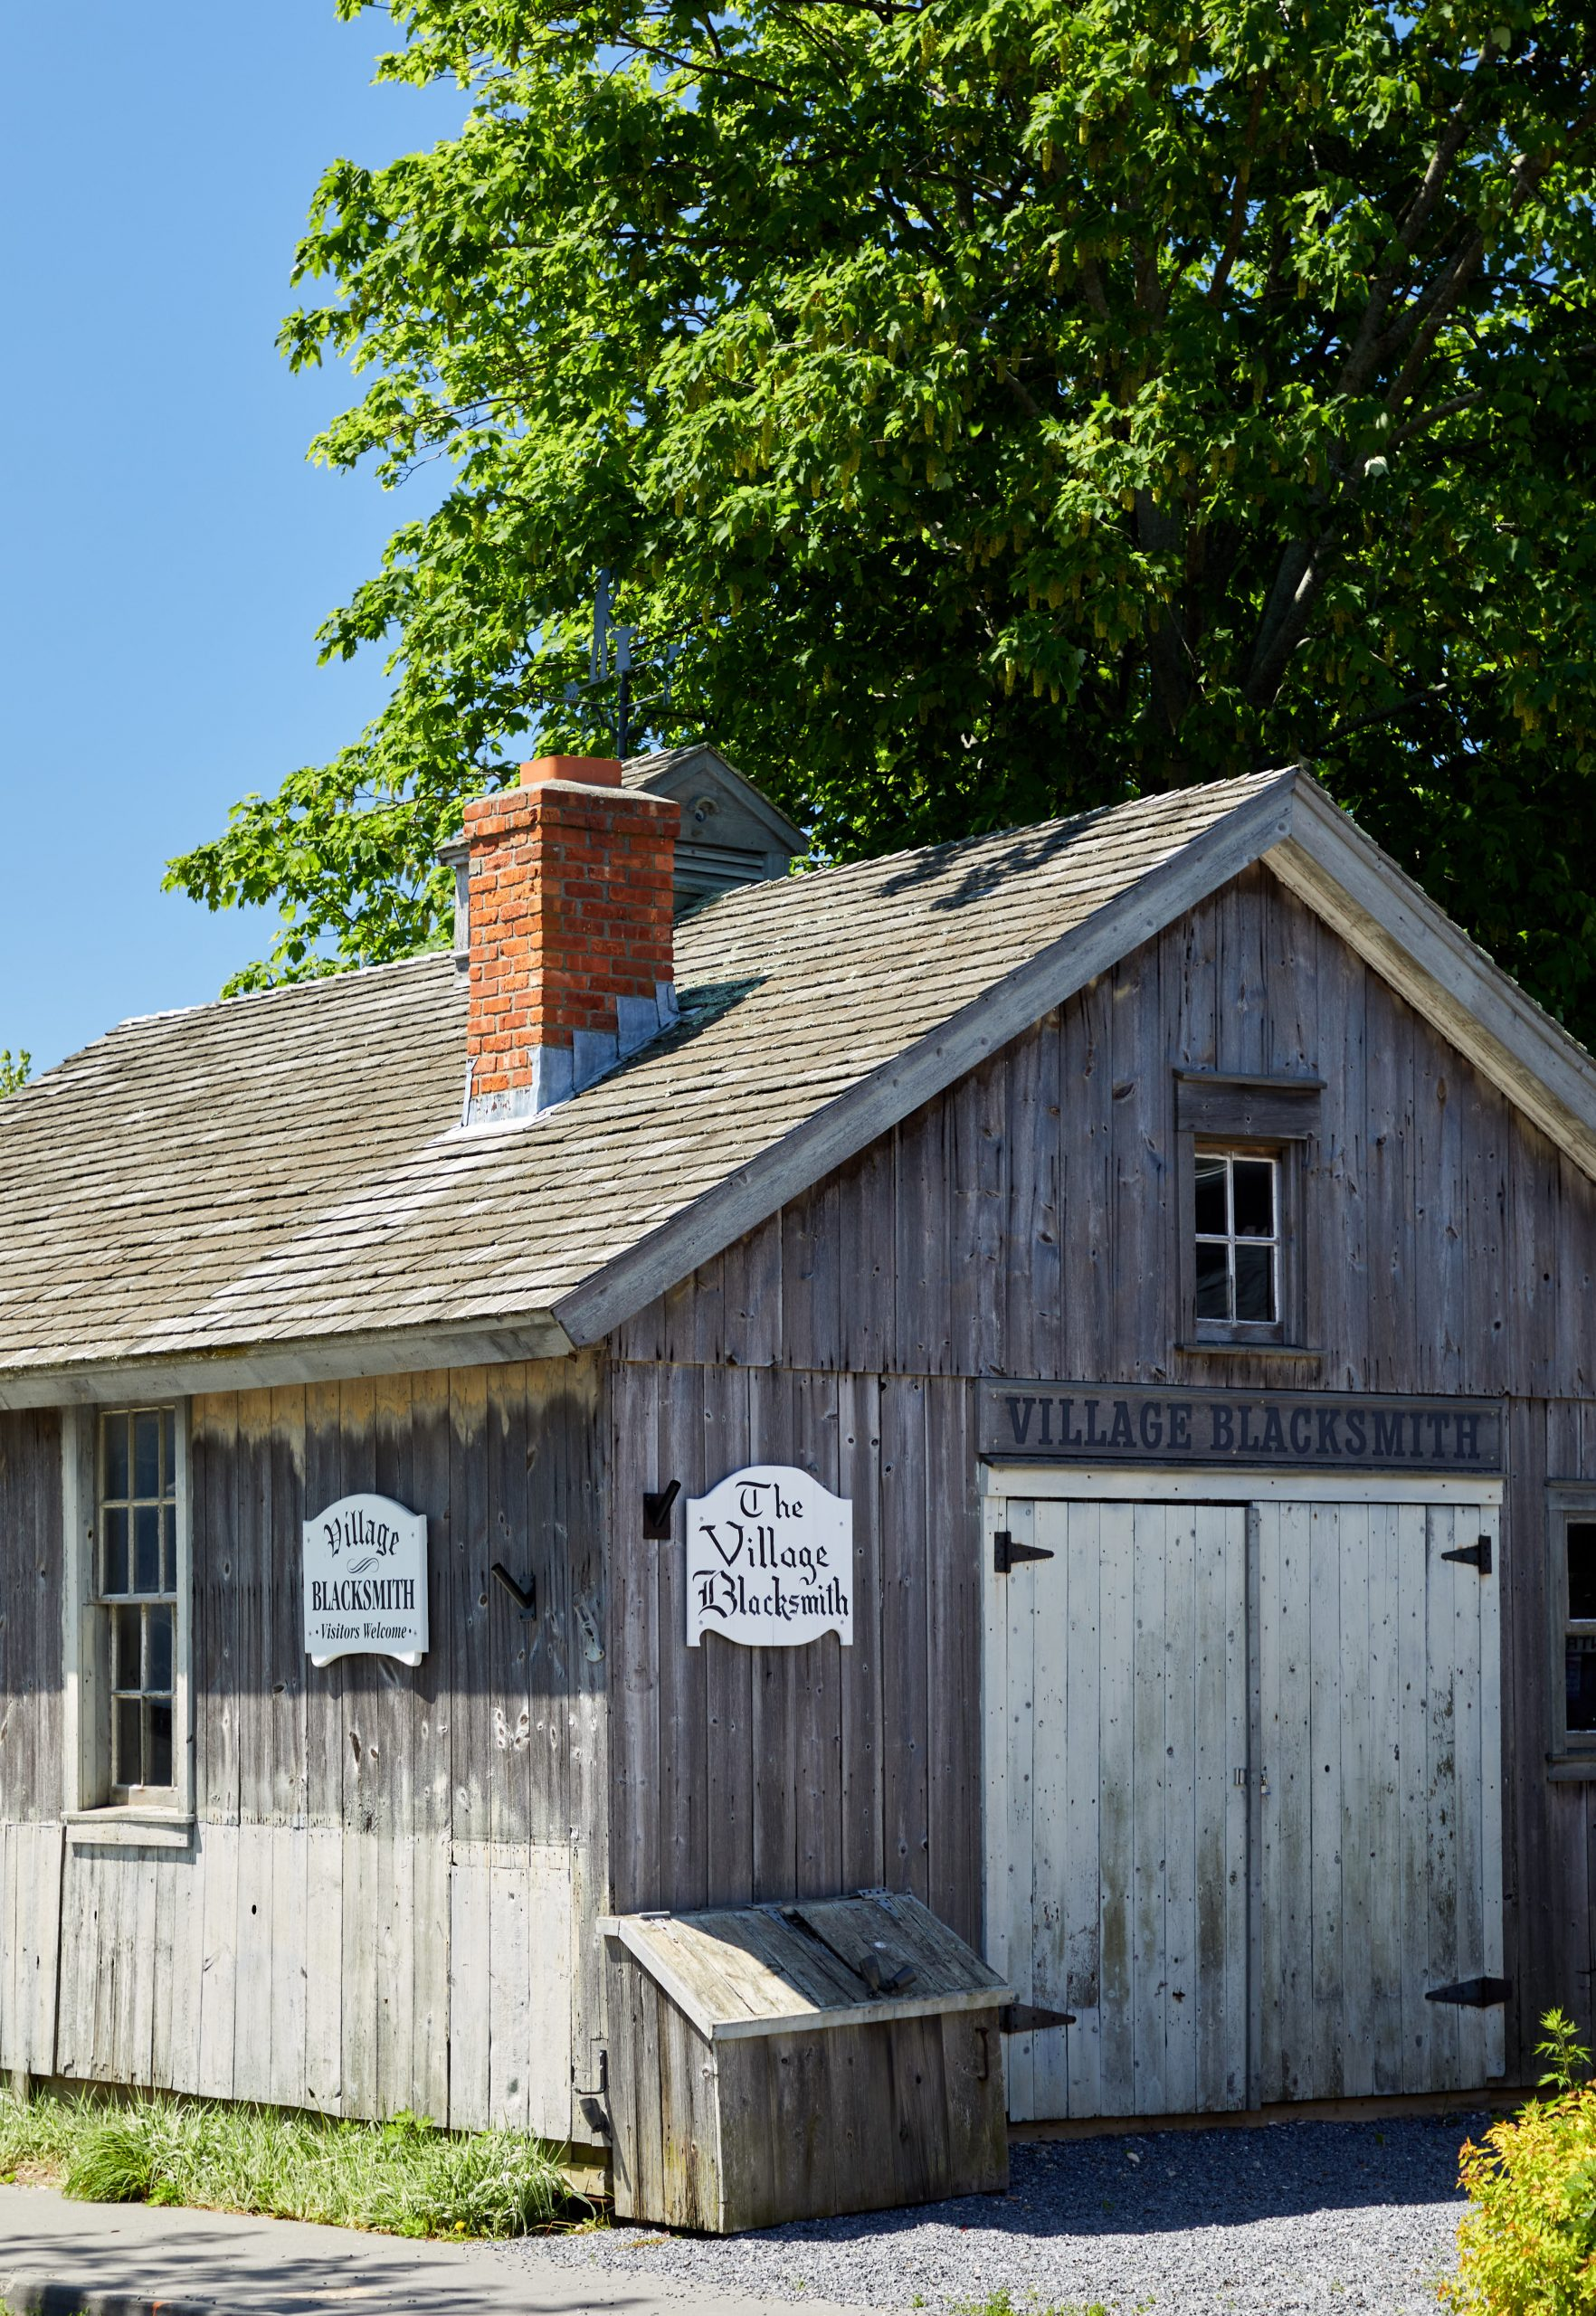 The Village Blacksmith building